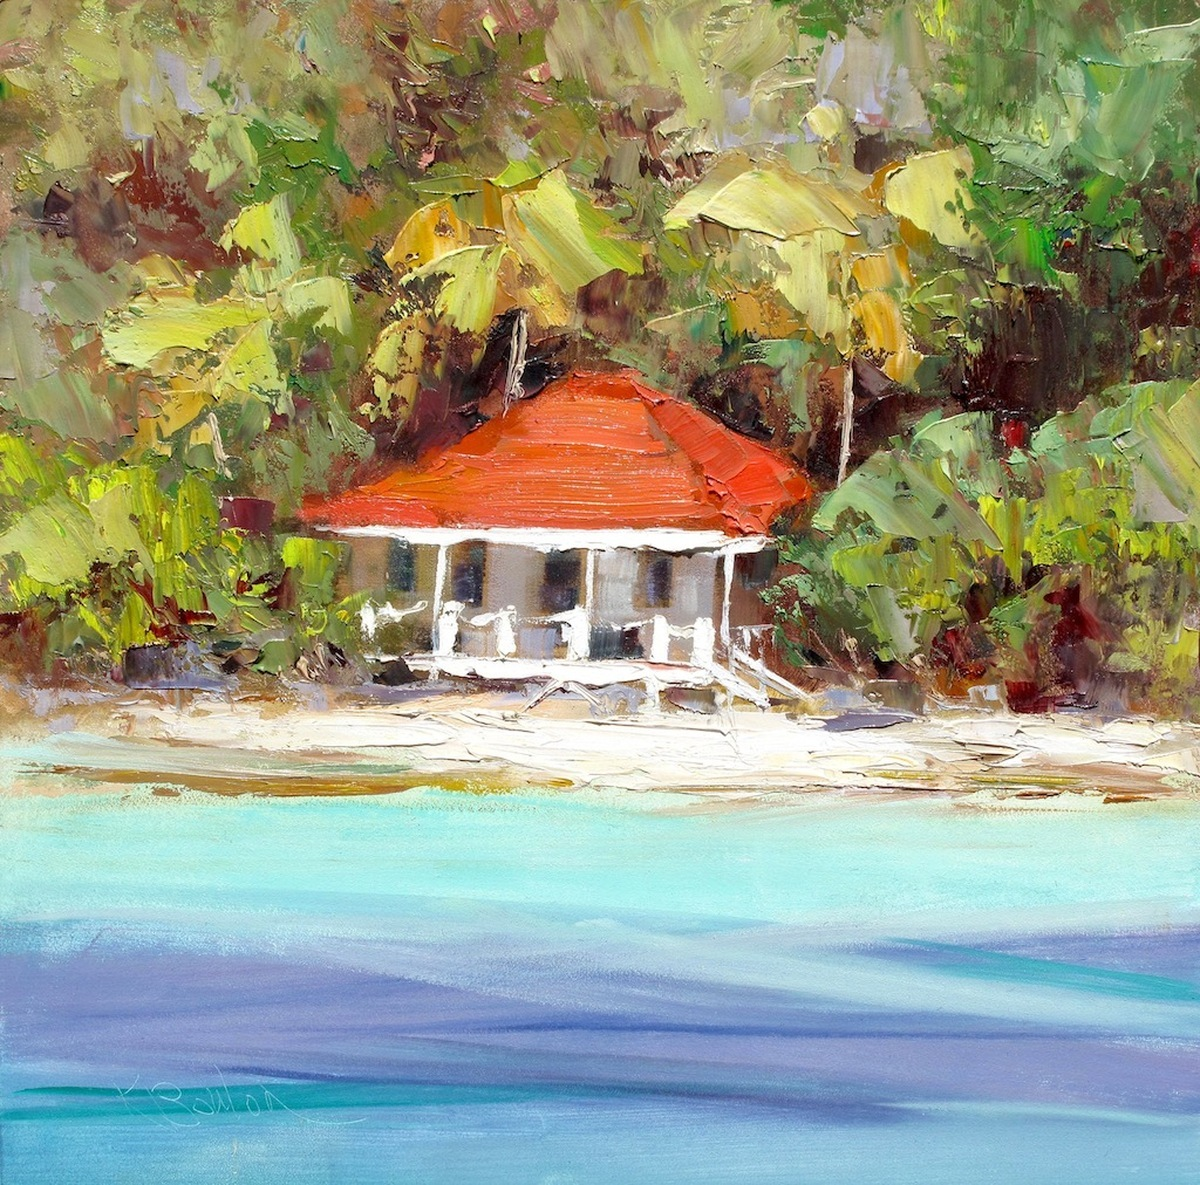 Little Thatch, BVI, Honeymoon Cottage 4 (large view)